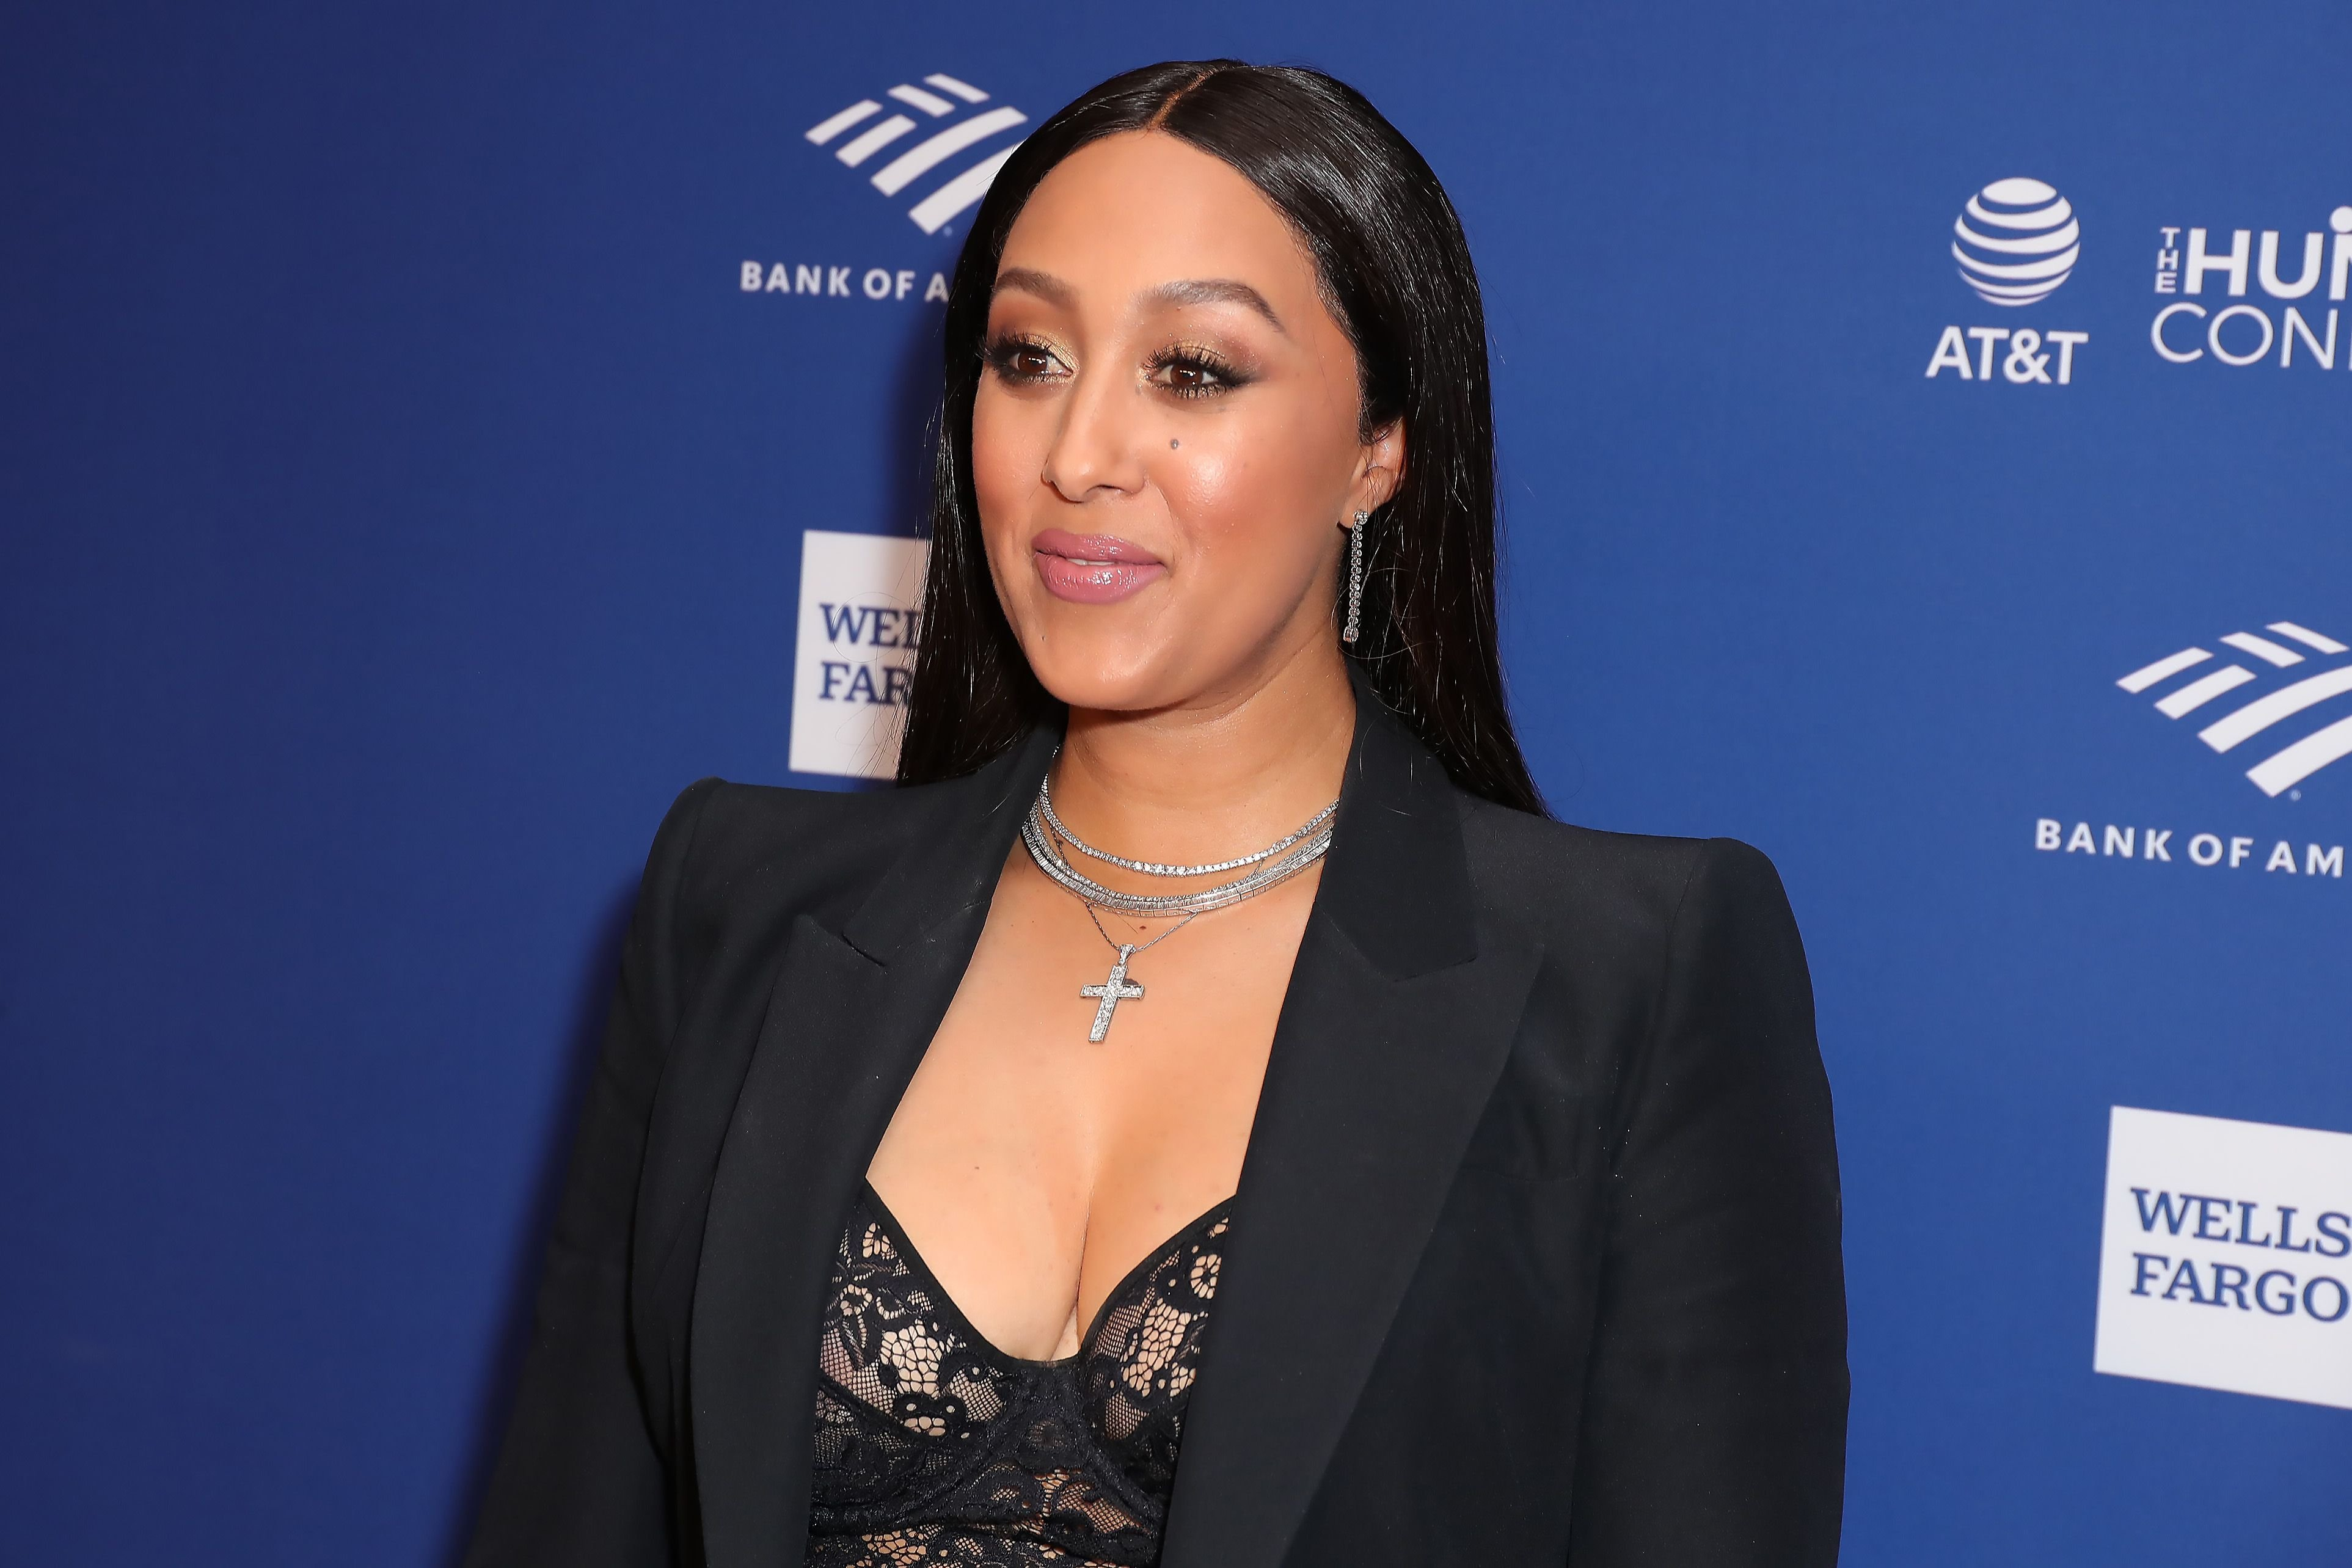 Tamera Mowry-Housley at the 51st NAACP Image Awards on February 21, 2020 | Photo: Getty Images